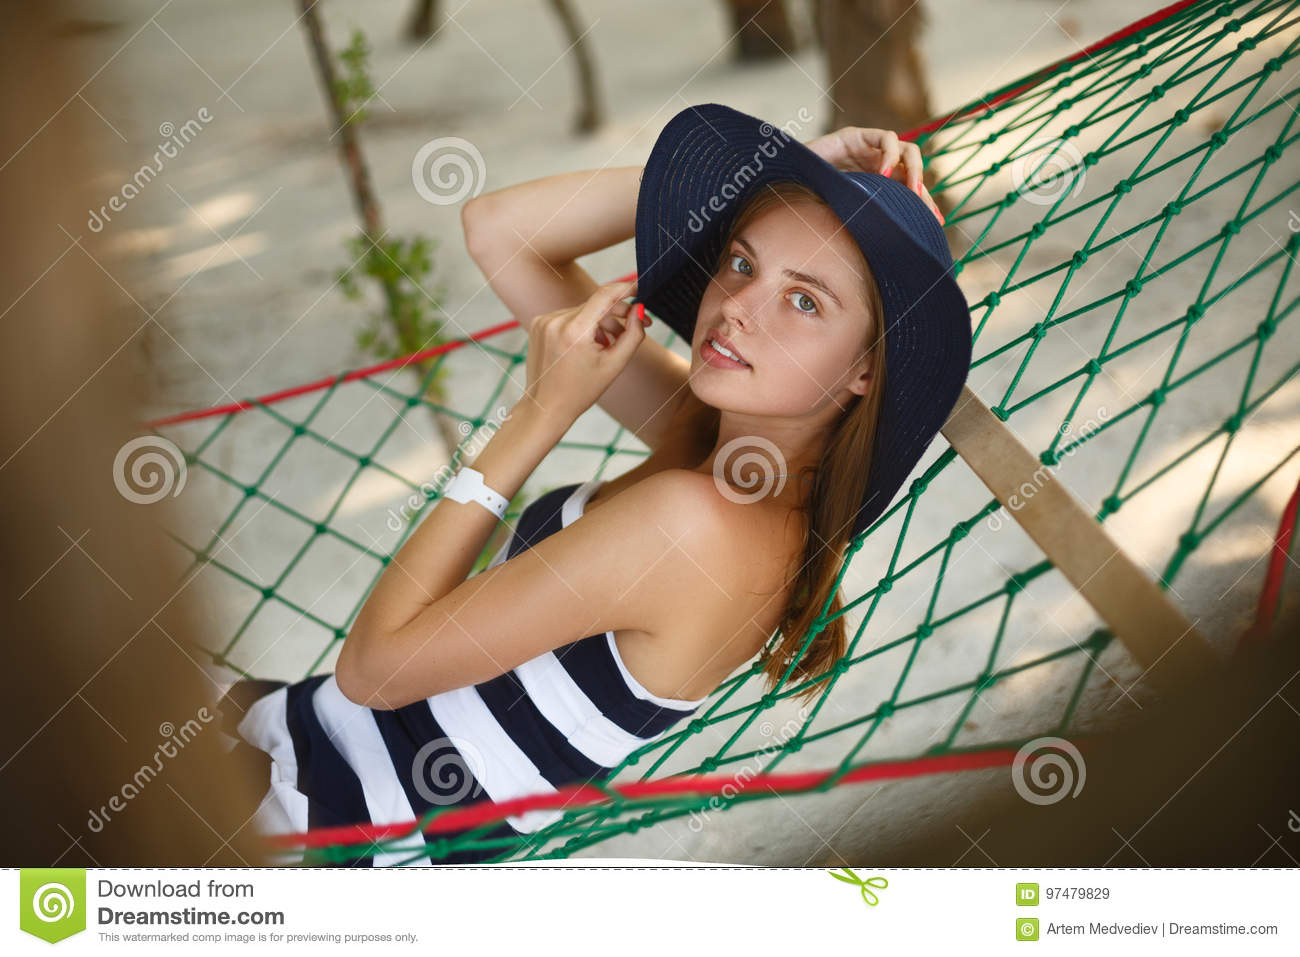 Woman relaxing in the hammock on tropical beach in the shadow, hot sunny day. Girl looks to camera with smile